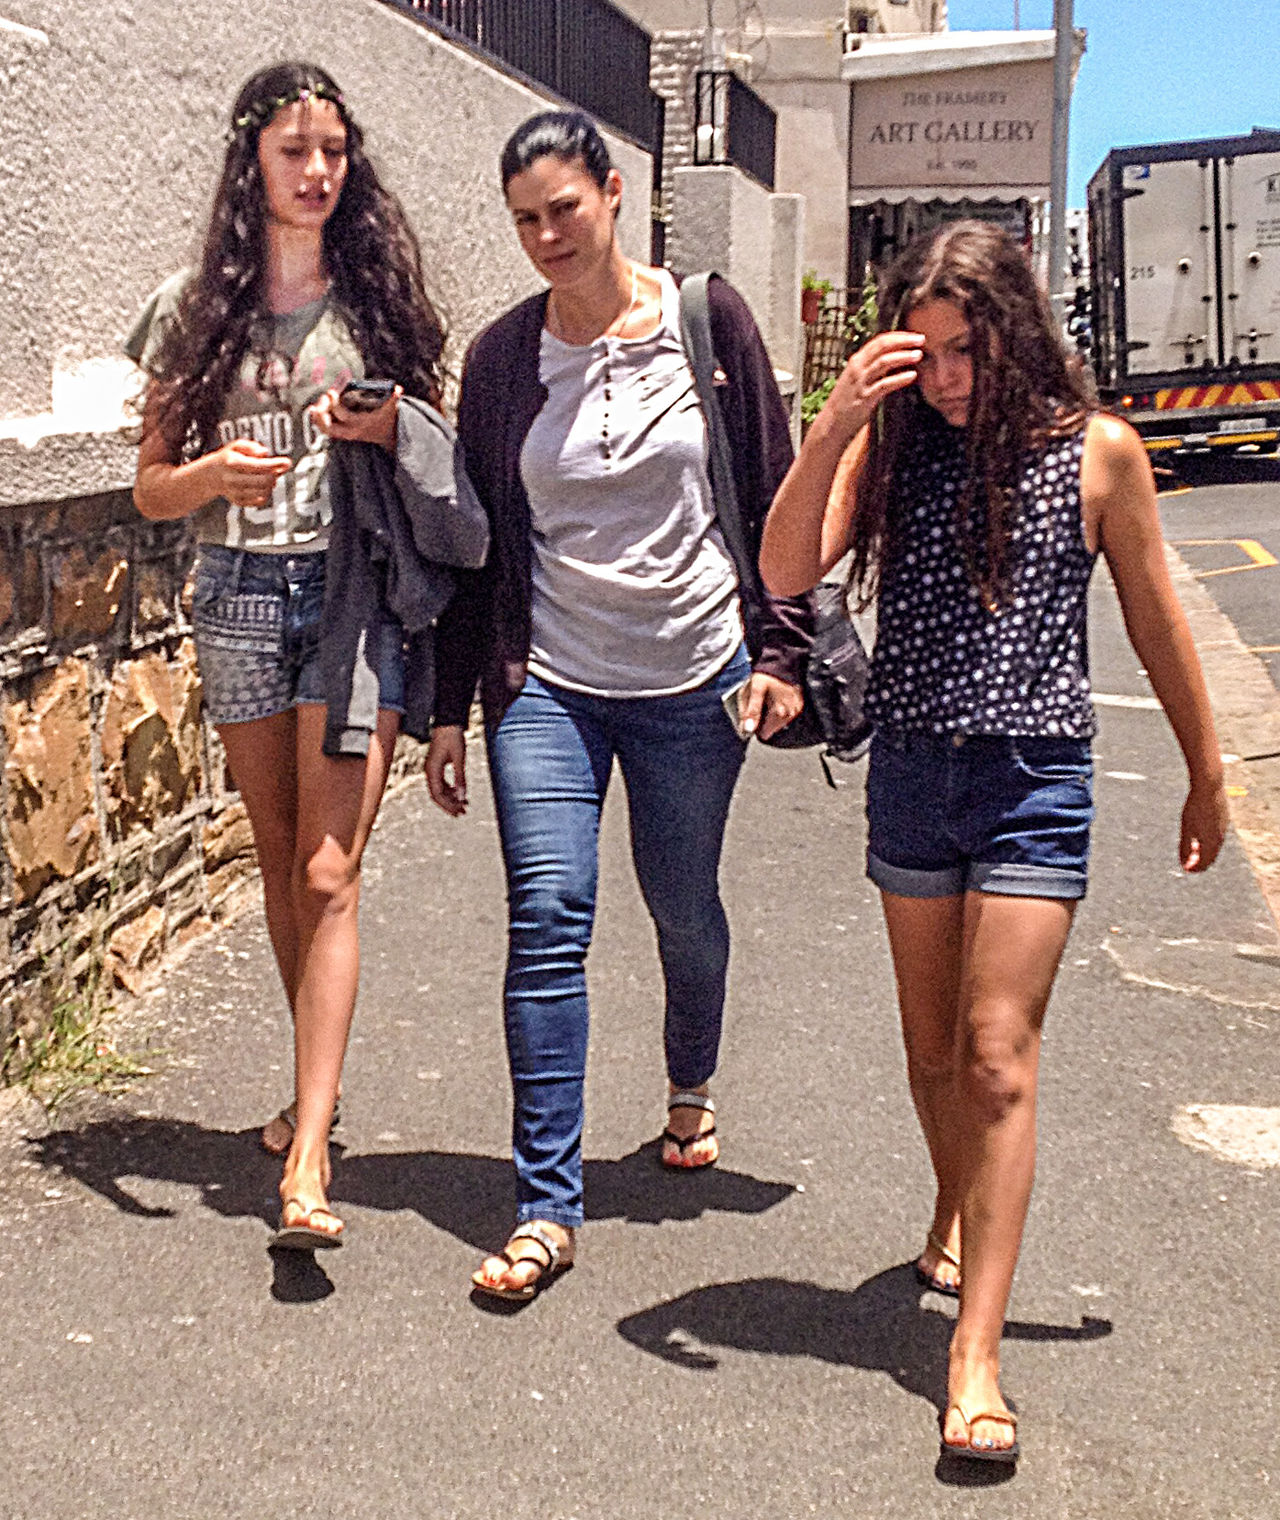 Candid Casual Clothing City Life Full Length Lifestyles Outdoors Streetphotography Three Girls Young Adult